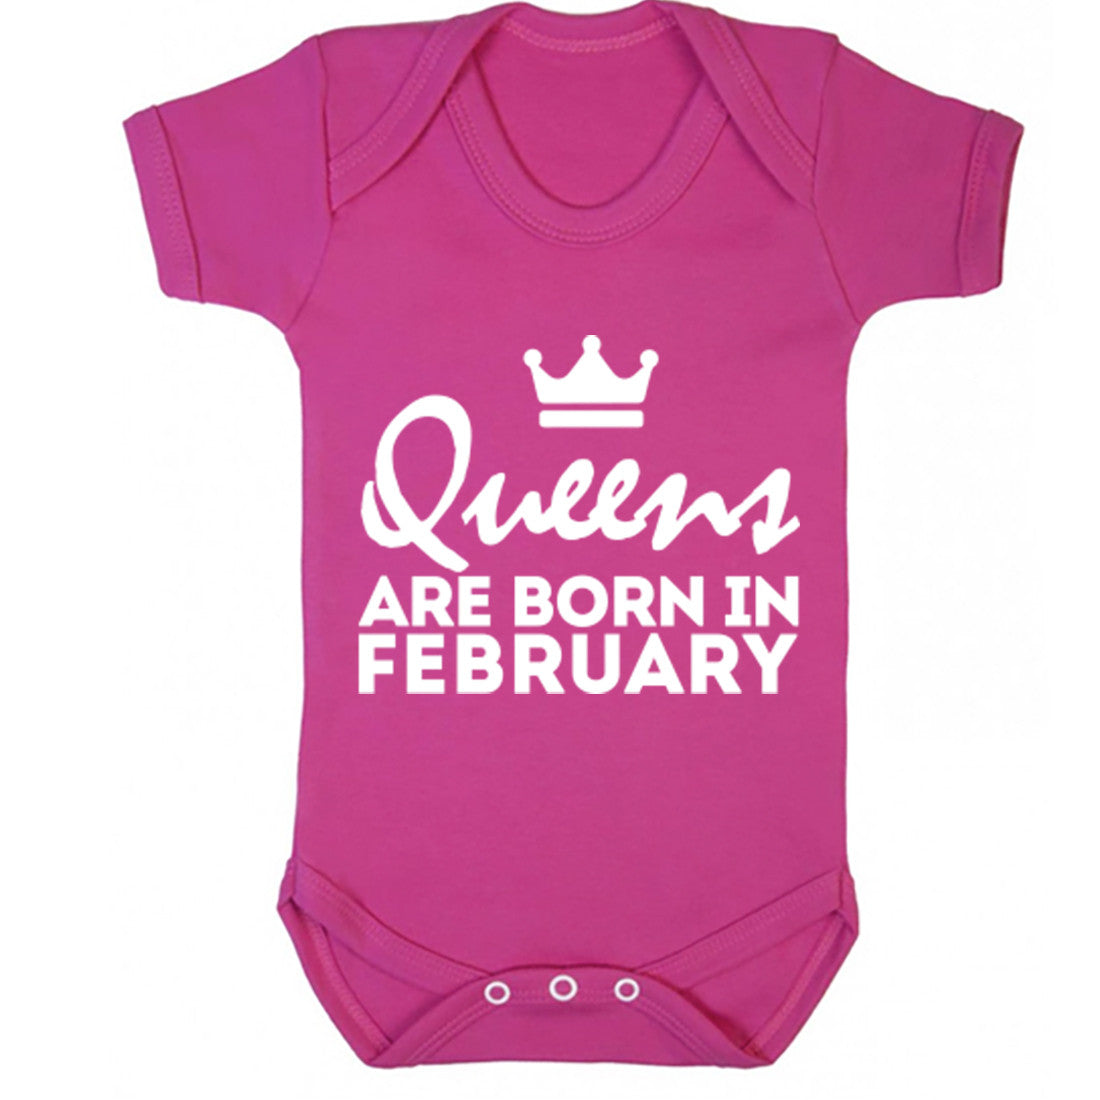 Queens Are Born In February Baby Vest K1673 - Illustrated Identity Ltd.